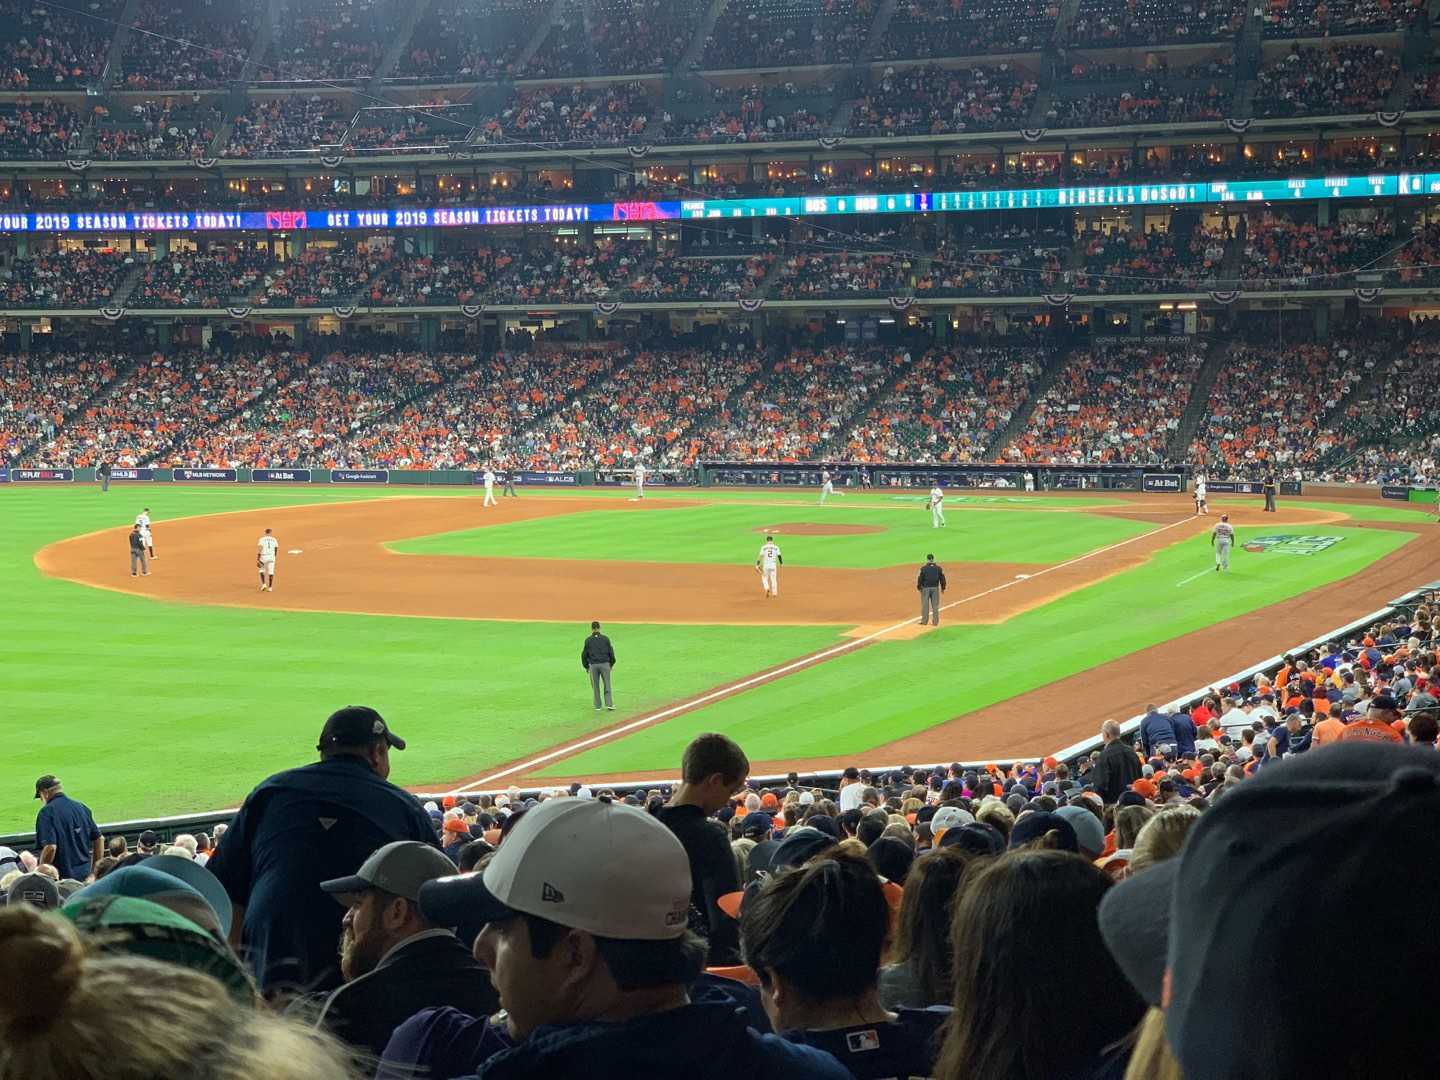 Minute Maid Park Section 106 Row 38 Seat 5